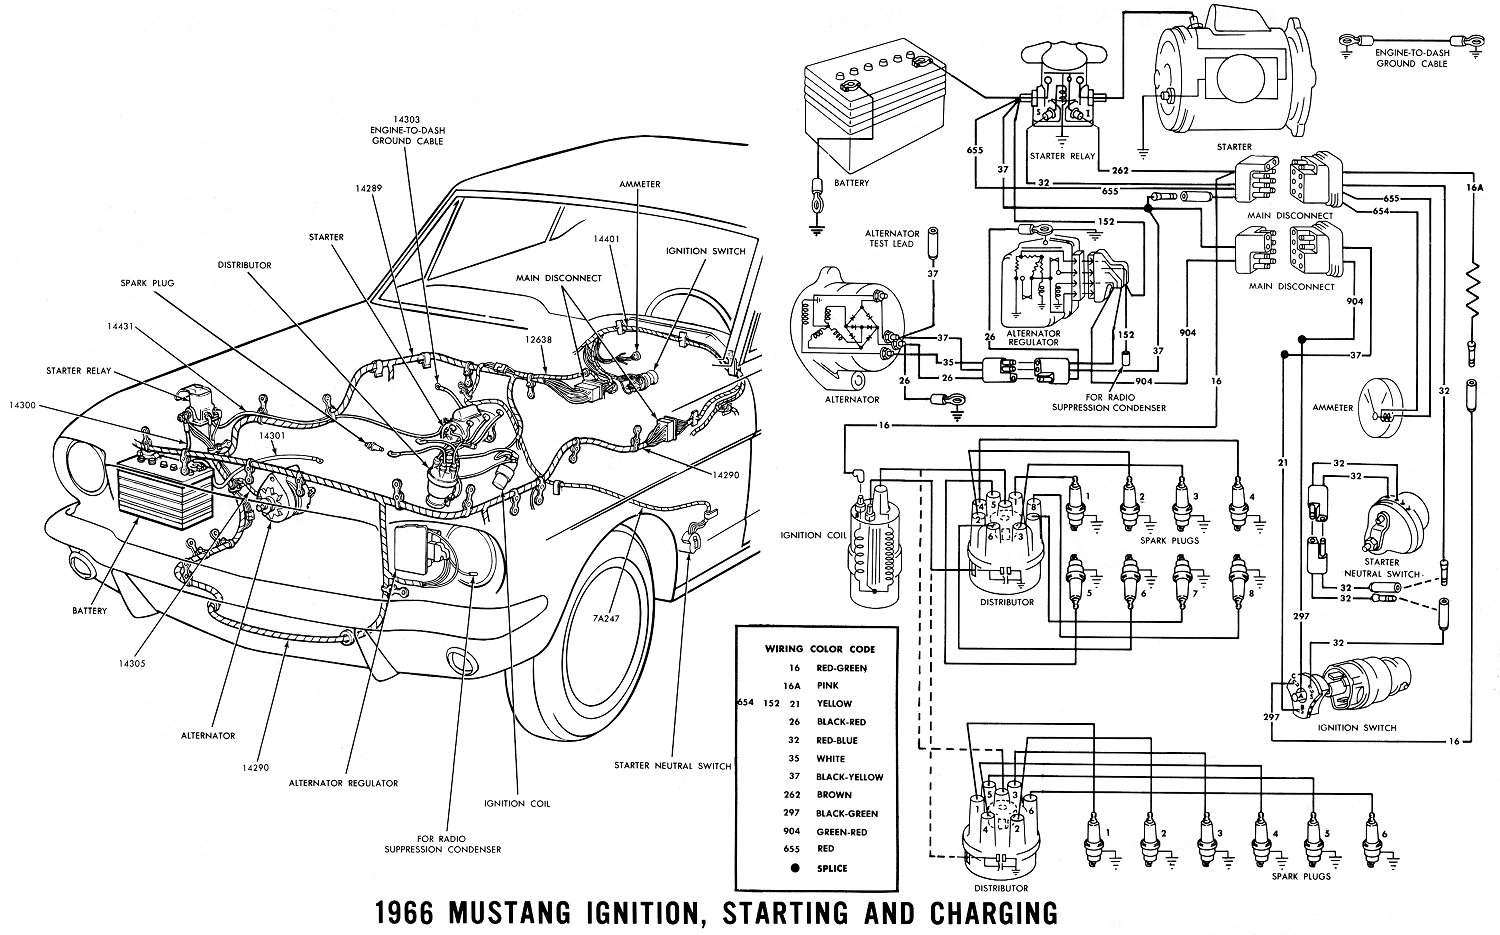 66ignit 1966 mustang wiring diagrams average joe restoration 1965 Mustang Restoration Guide at n-0.co